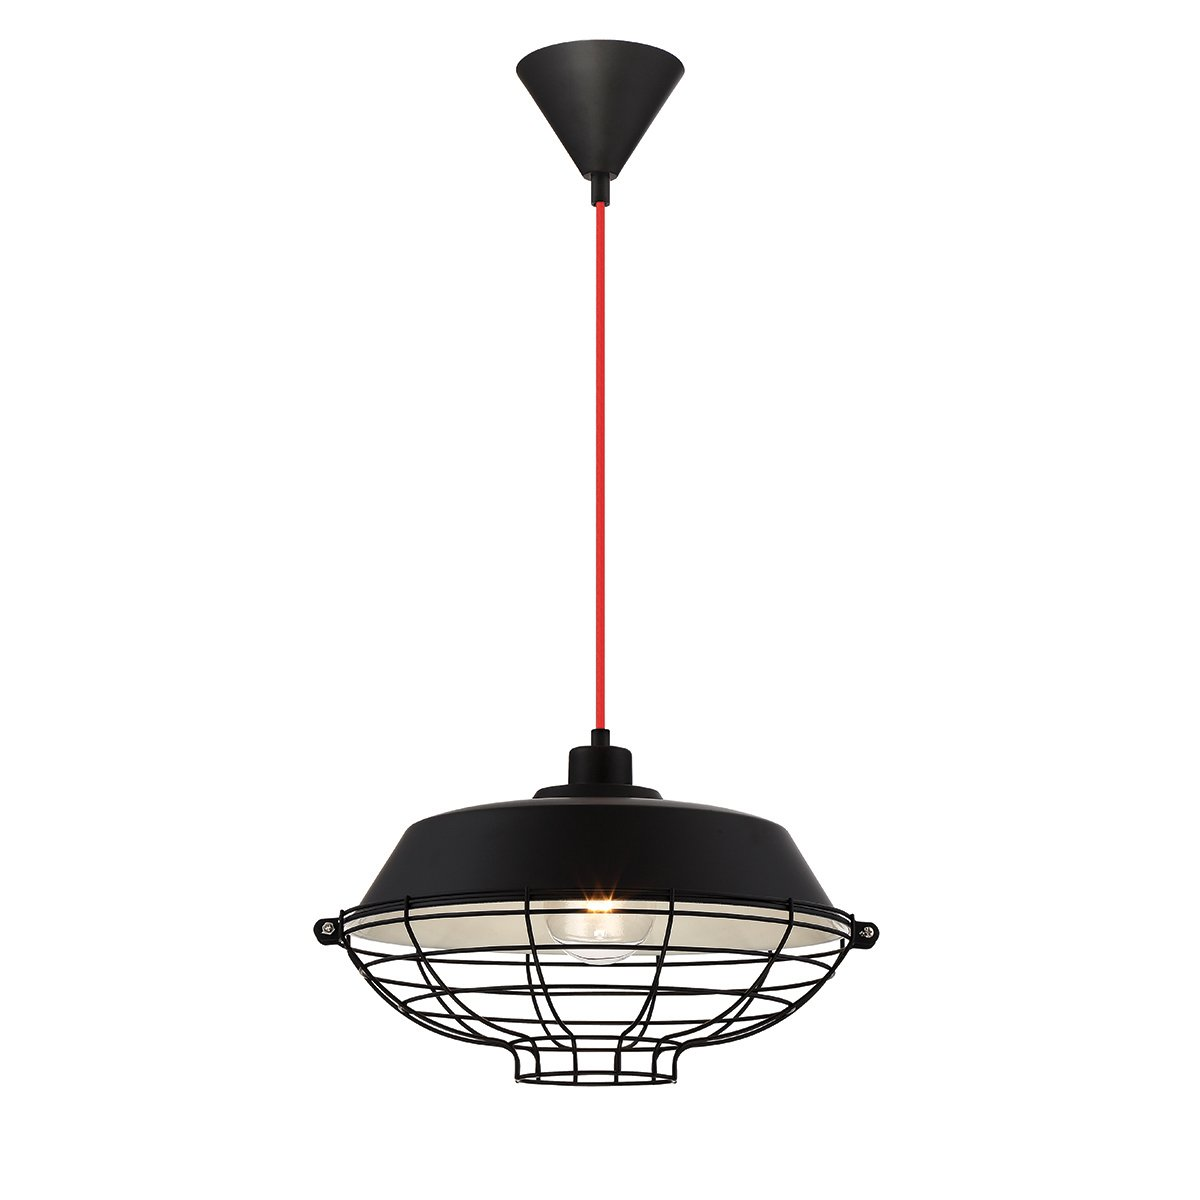 Eurofase London Metal Cage Diffuser Pendant Finish, Fabric Power Cord, 1 A19 Light Bulb, 14 Inches in Diameter-Model 30012-035, Black